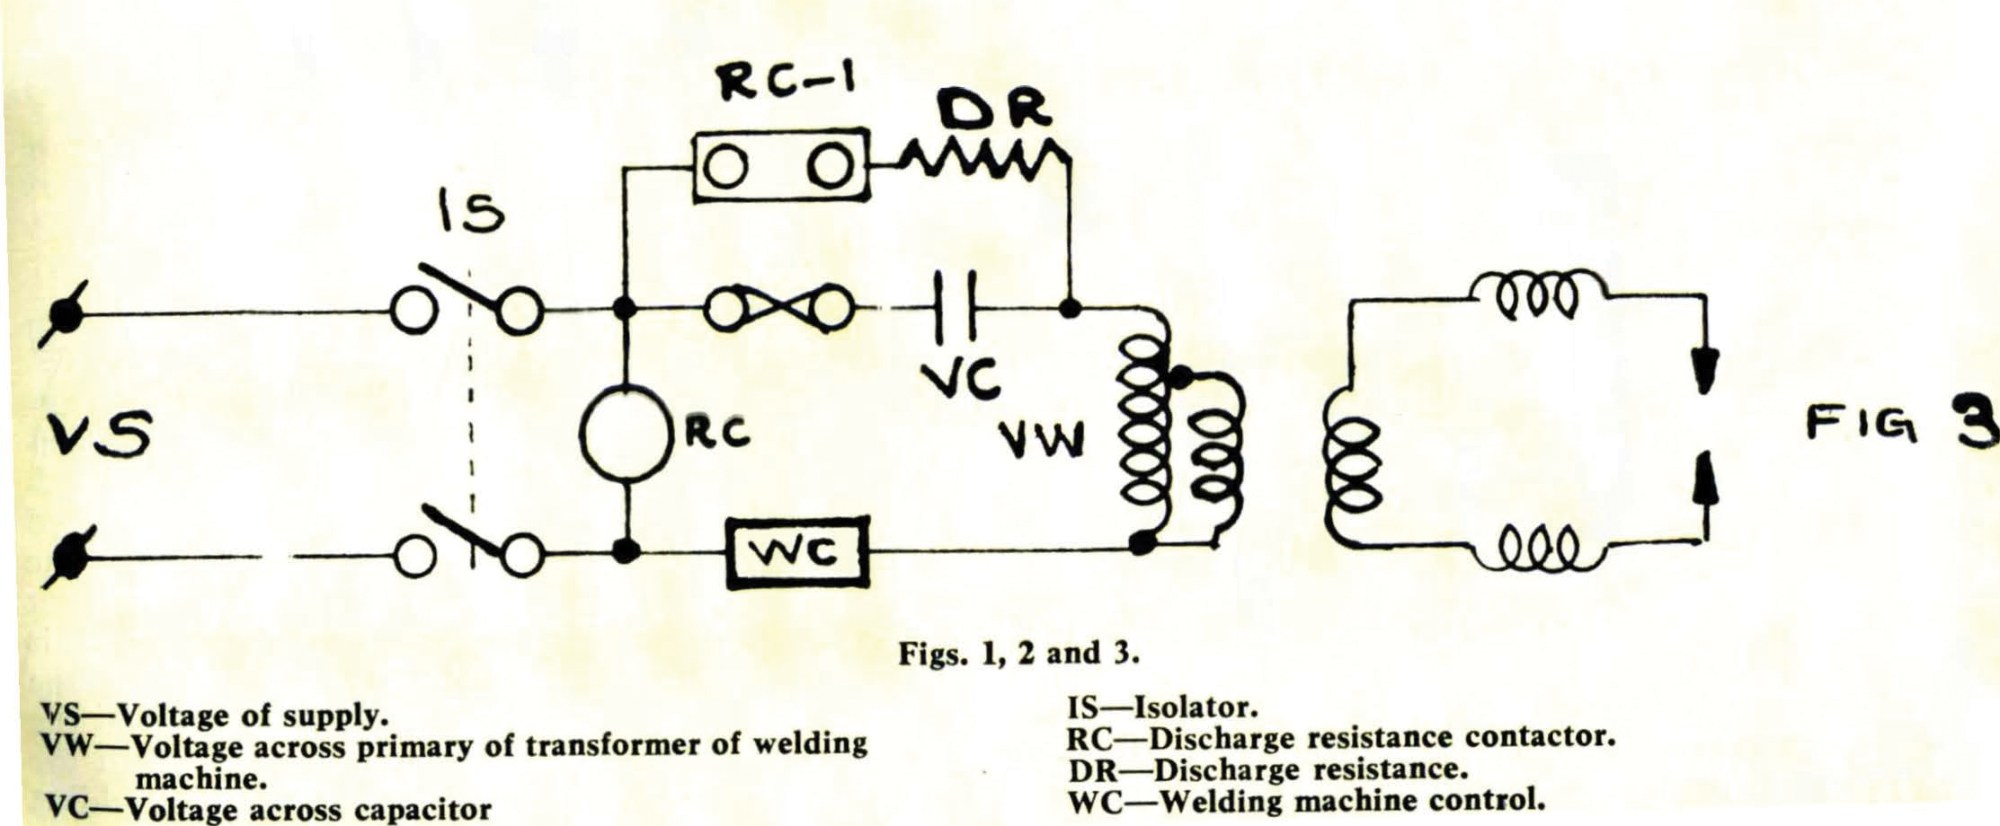 hight resolution of 3 how the circuit of an existing welding machine can be rearranged to apply a series capacitor